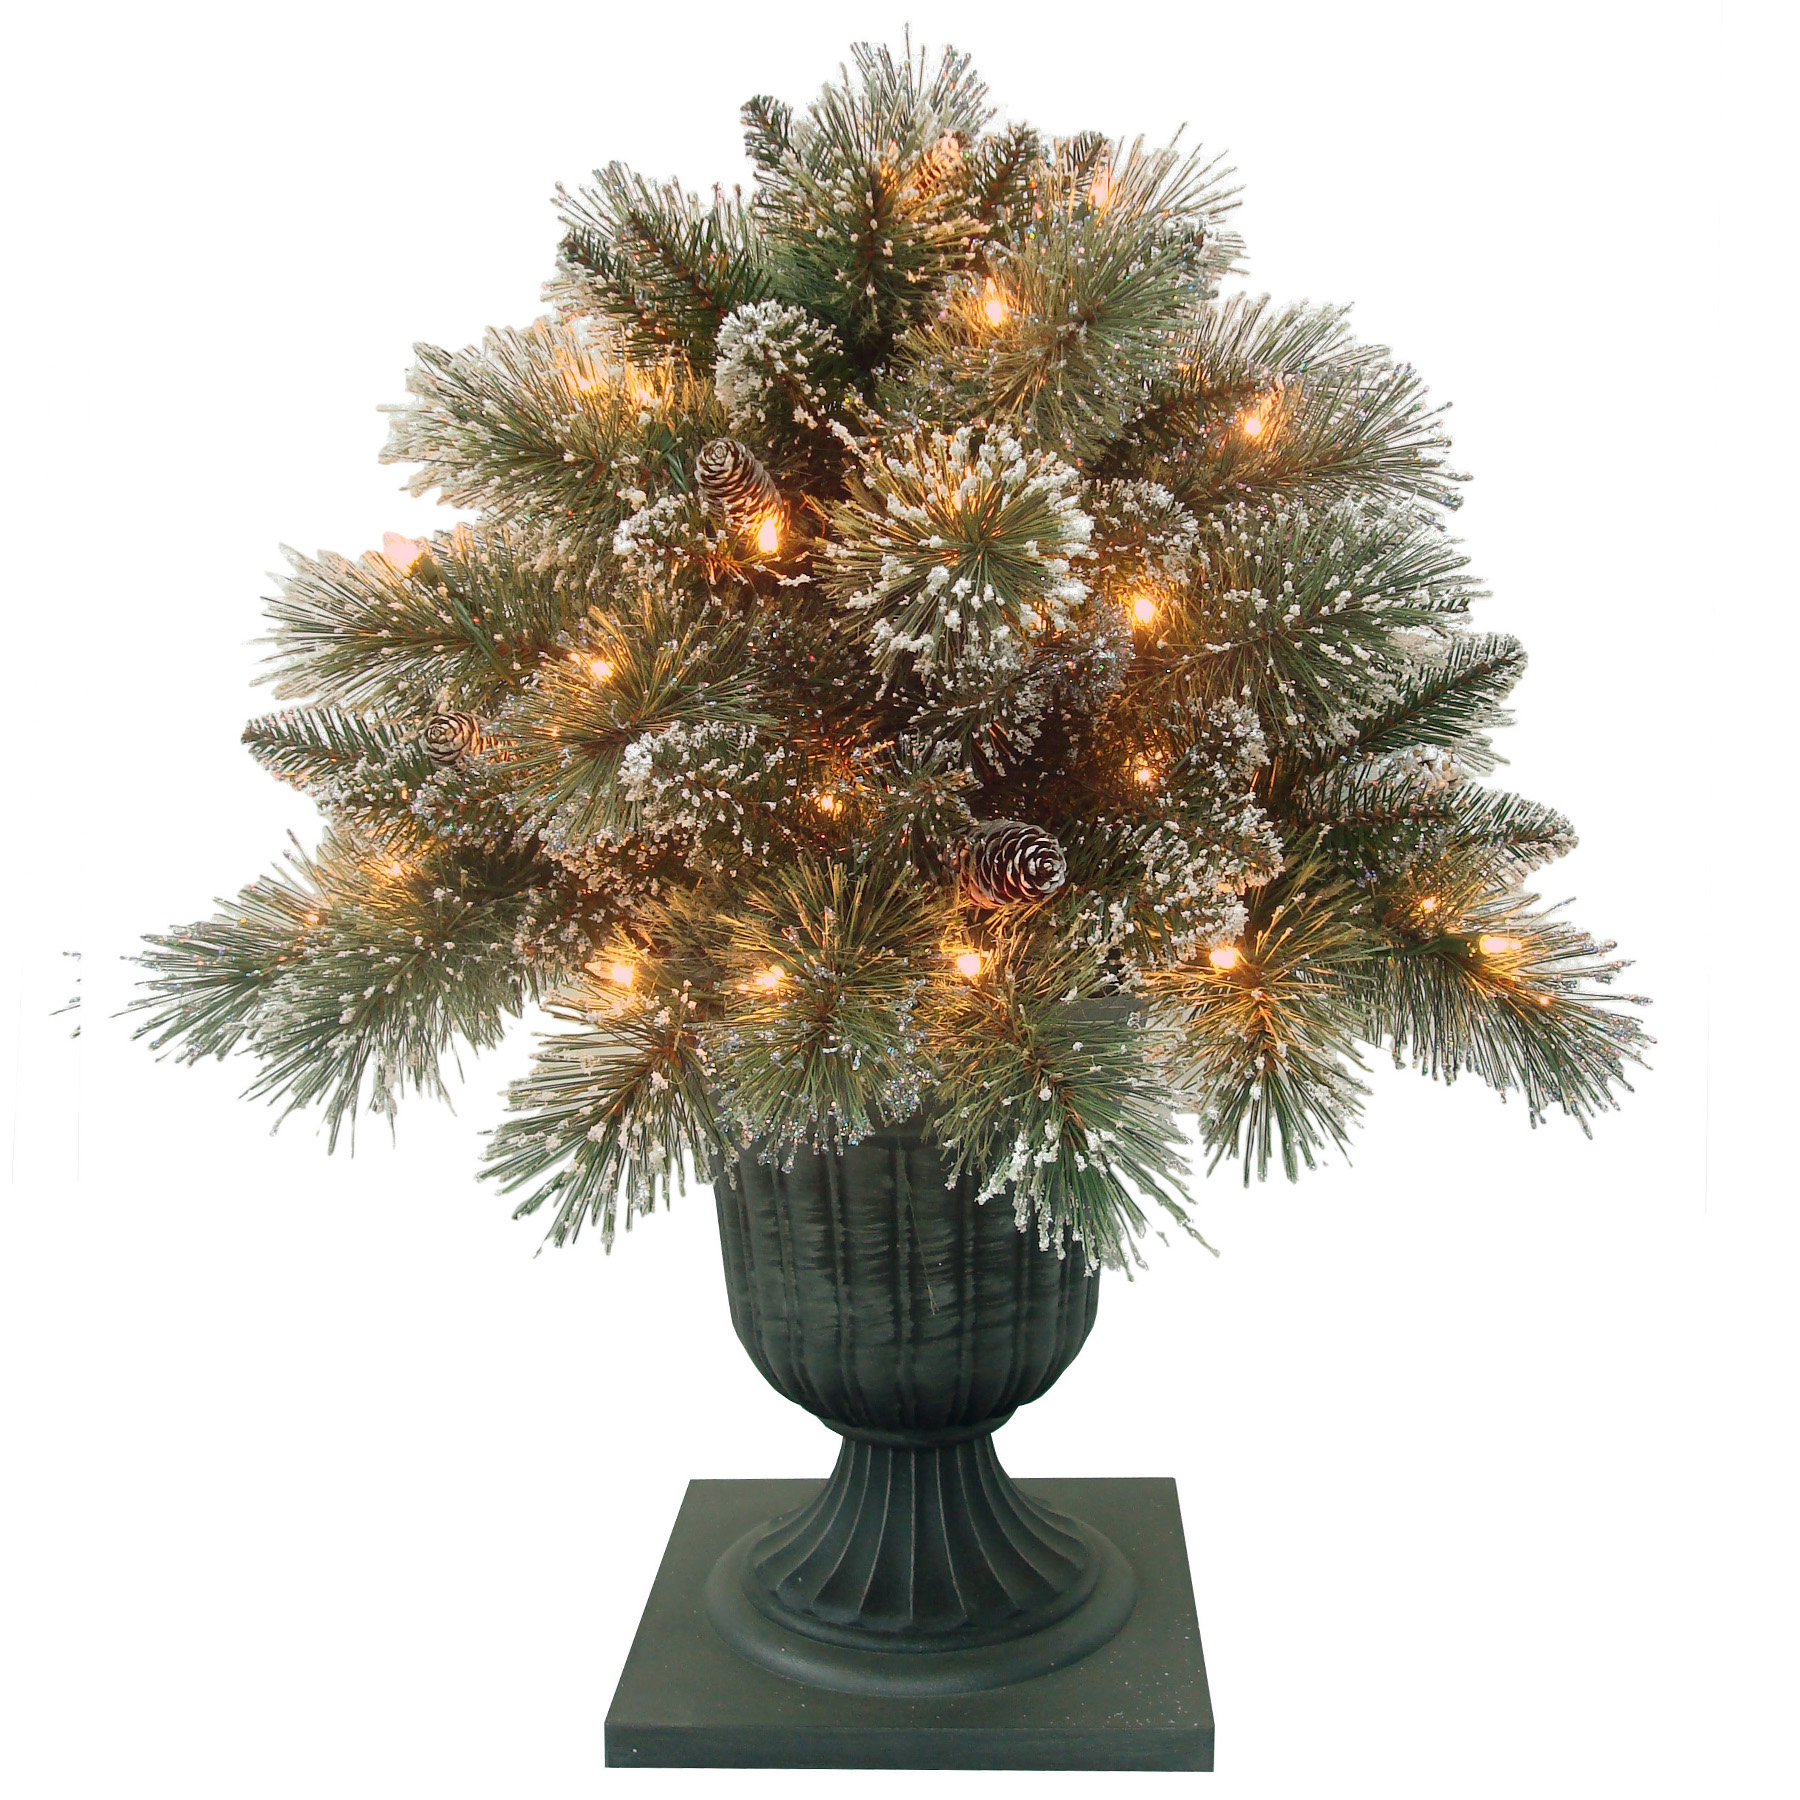 National Tree Company 26 Glittery Bristle Porch Bush With Clear Lights Seasonal Christmas